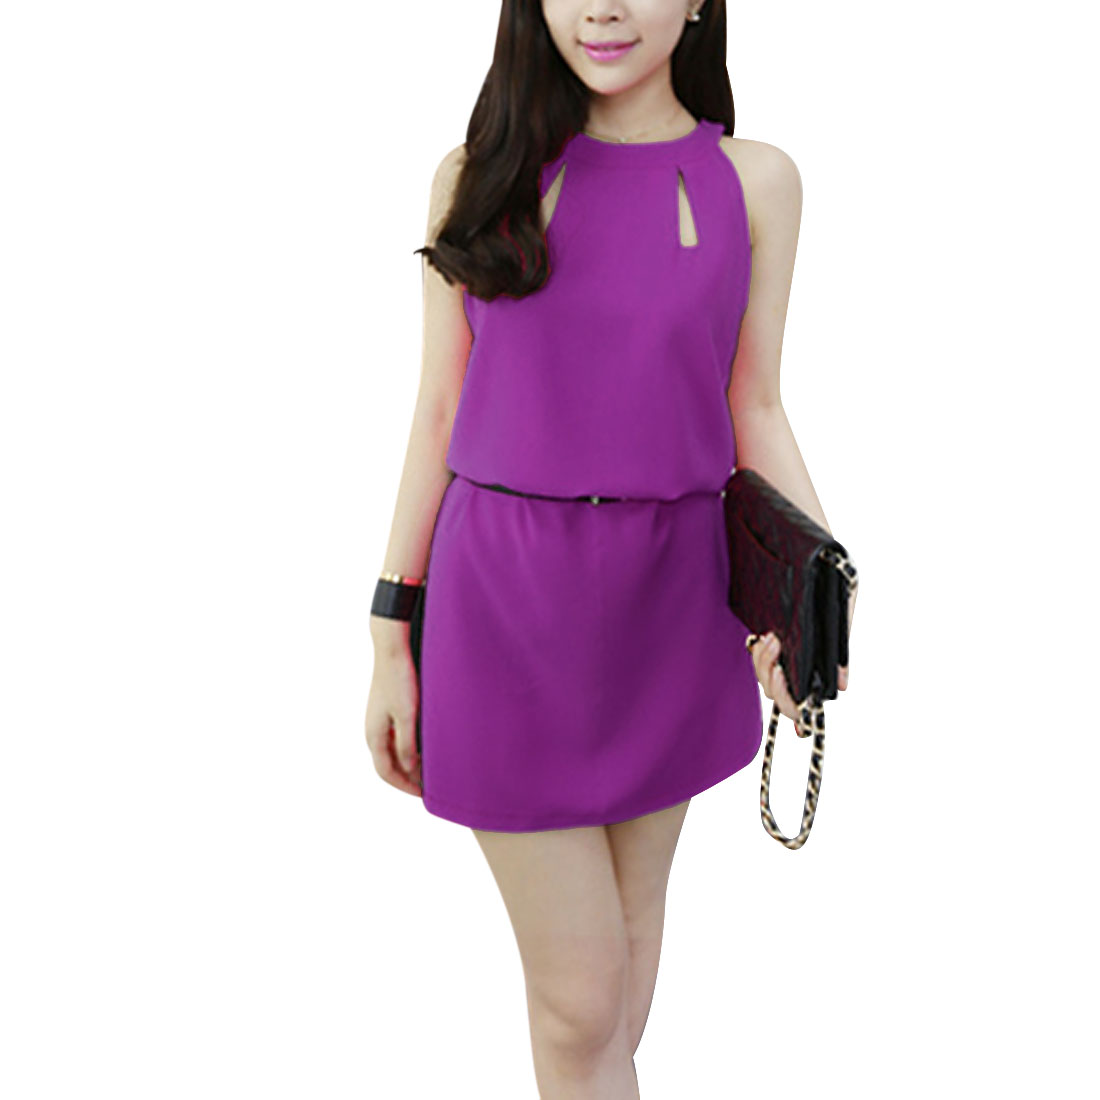 Women Halter Neck Sleeveless Cut Out Dress Violet XS